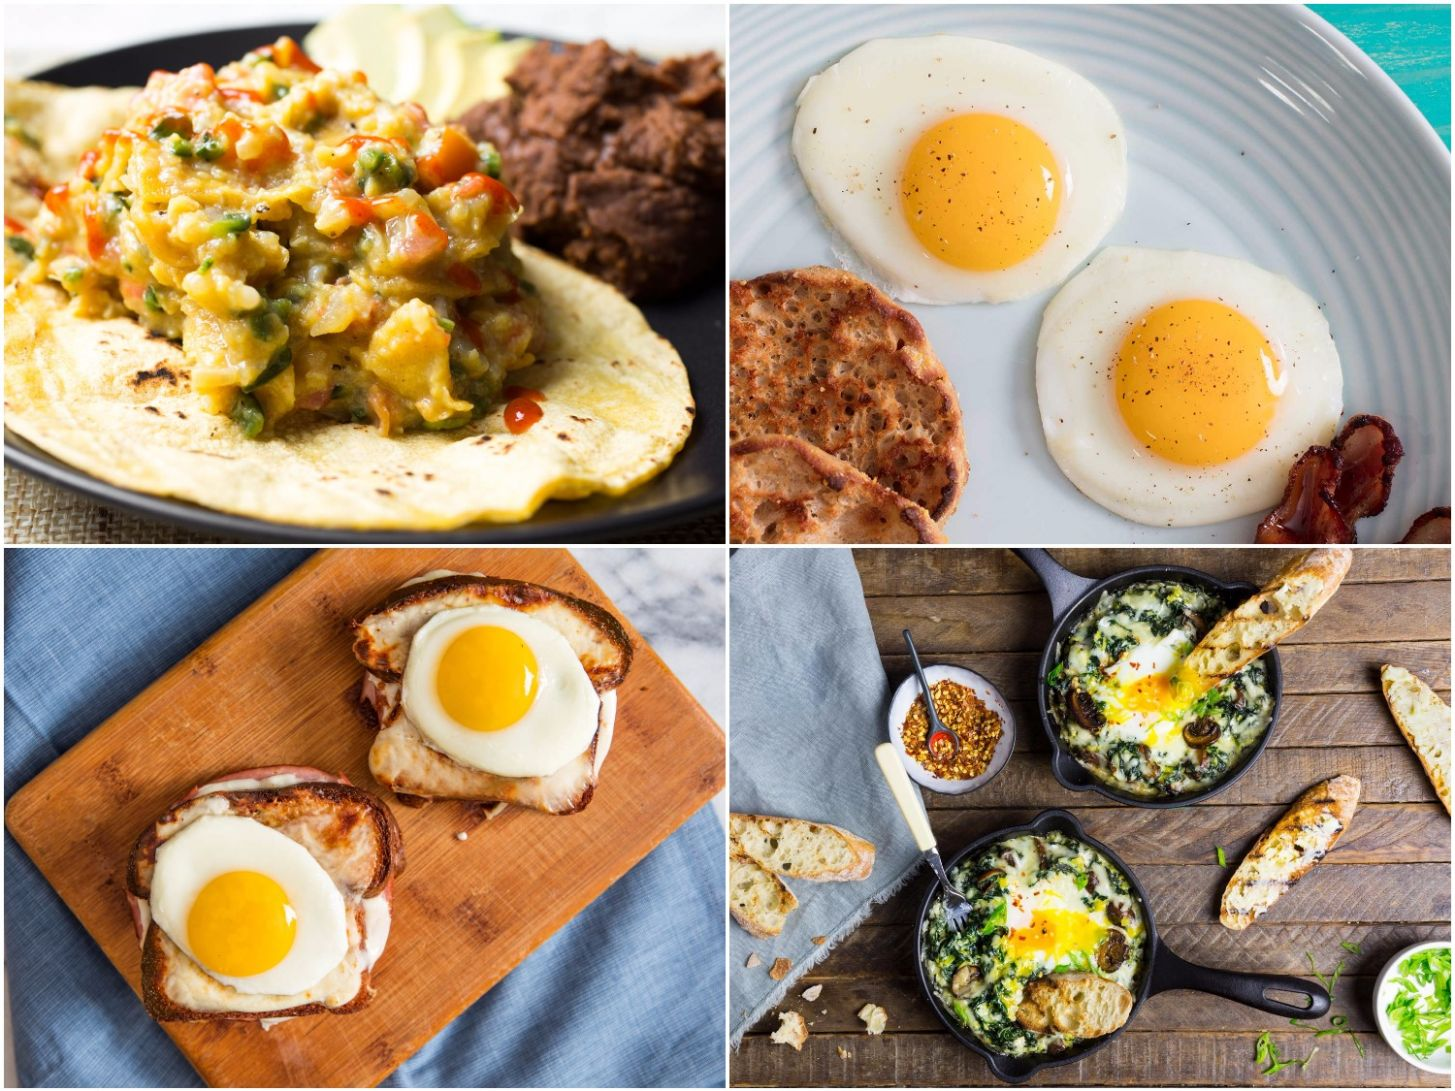 8 Egg Breakfast Recipes to Start Your Day | Serious Eats - Breakfast Recipes Using Eggs